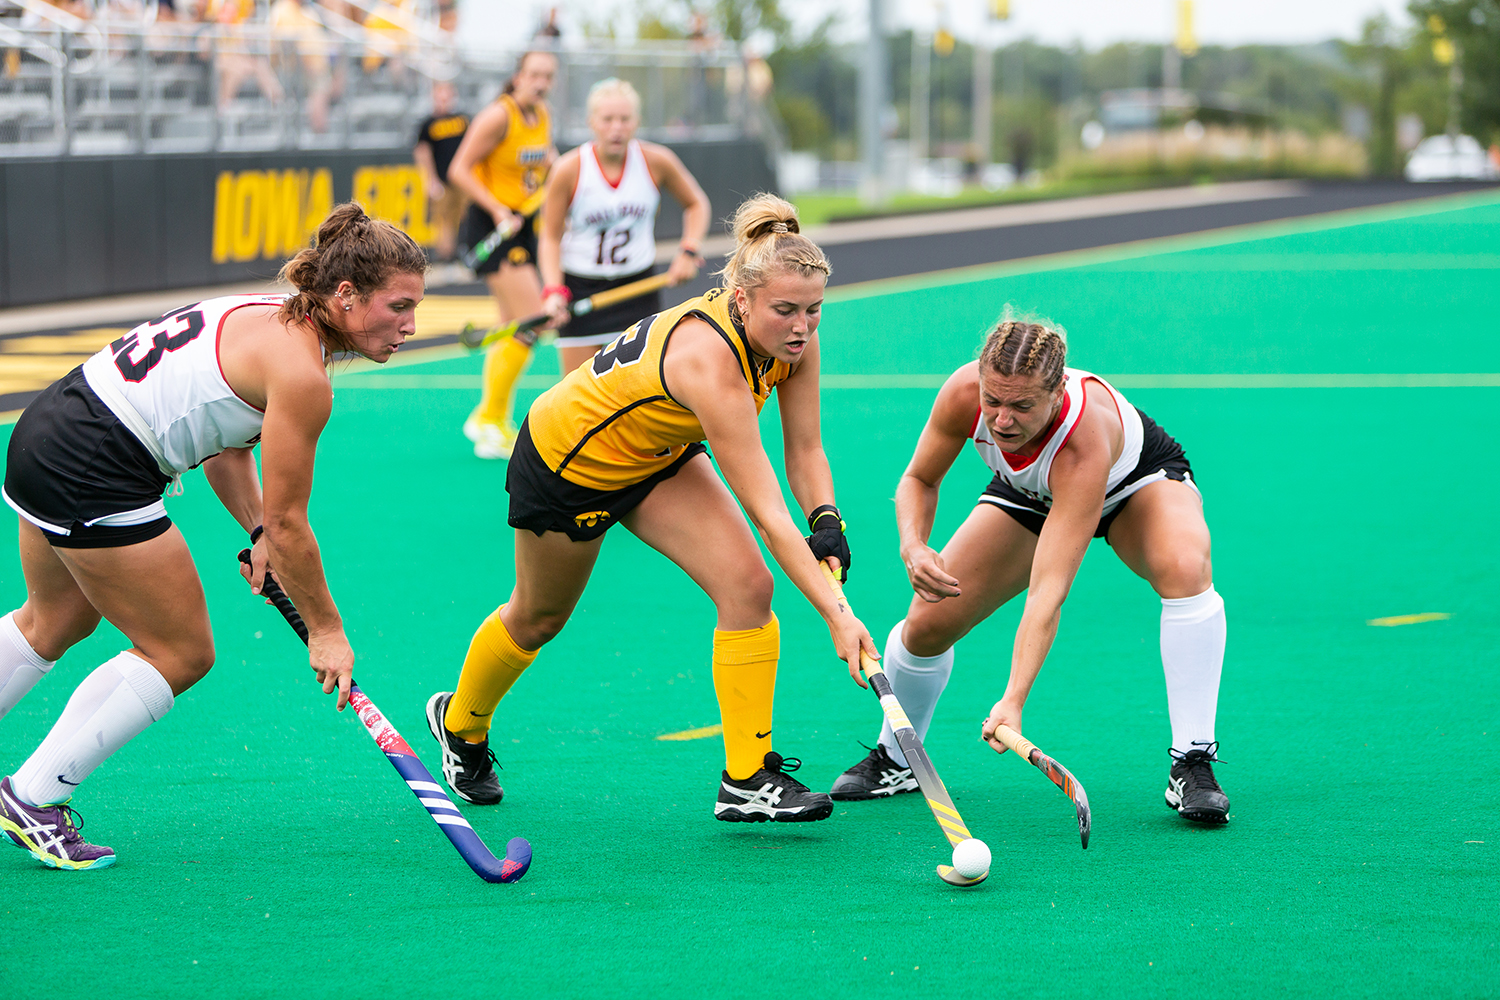 Iowa's Leah Zellner fights for control of the ball during a field hockey match against Ball State on Sunday, Sept. 2, 2018. The Hawkeyes defeated the Cardinals 7–1.